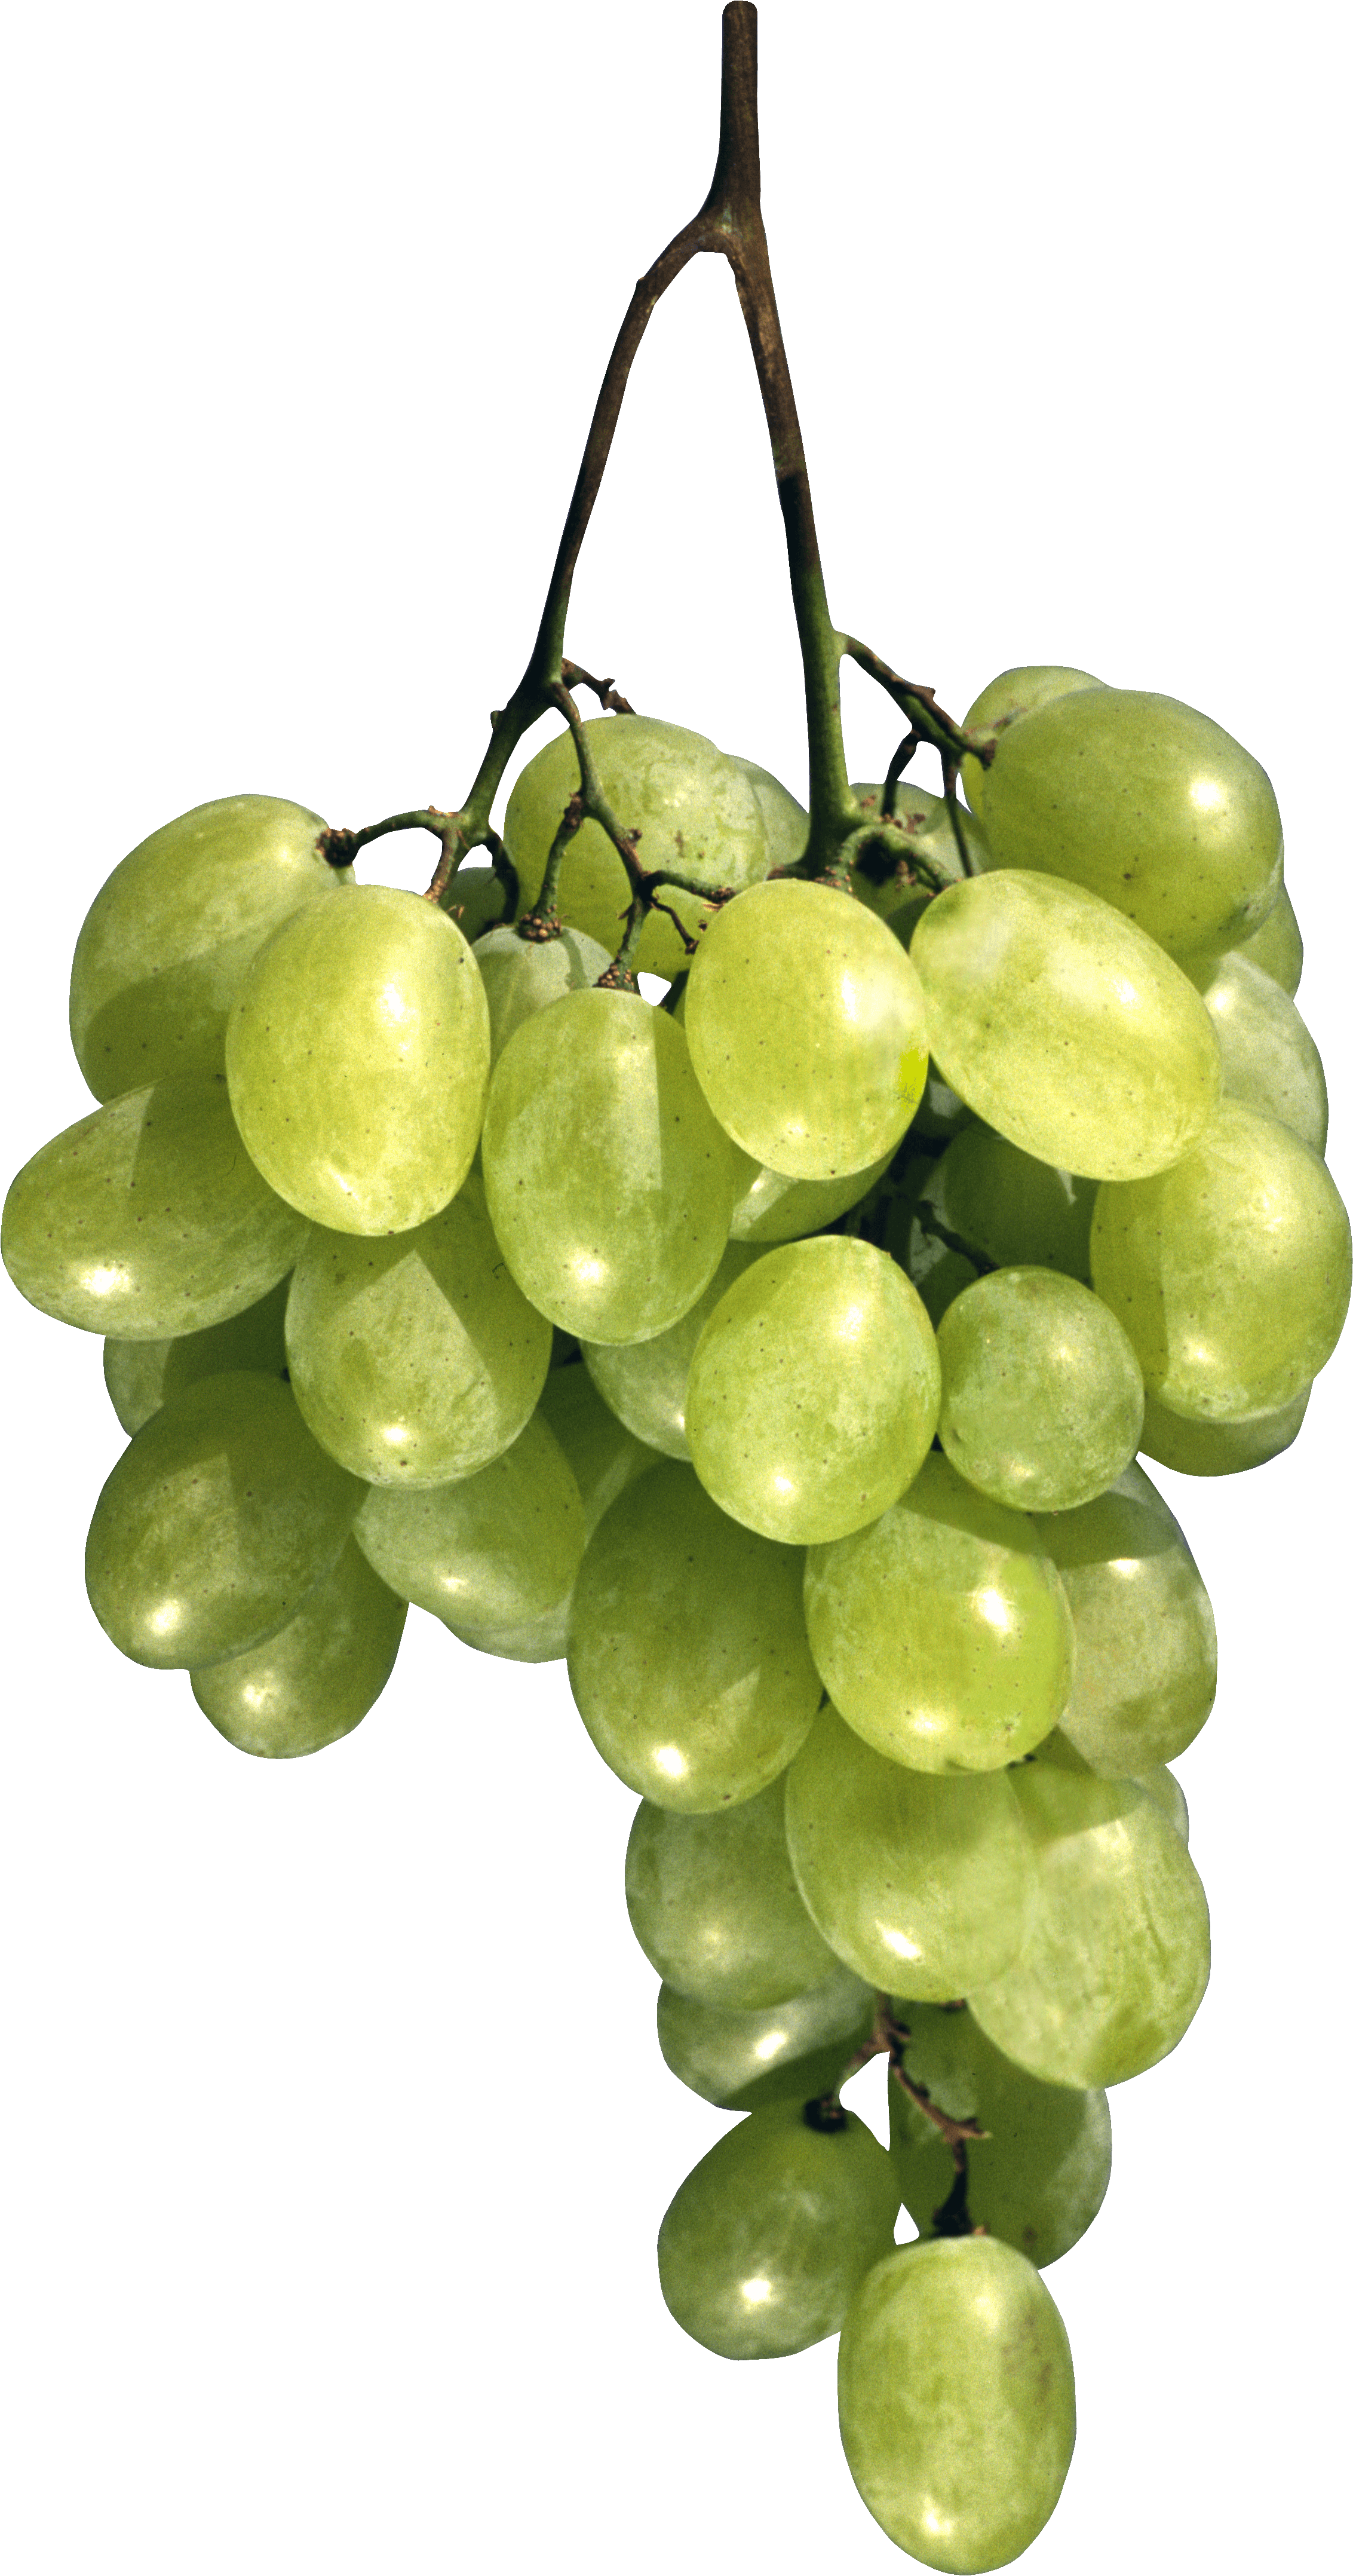 Green Grape Png Image PNG Image